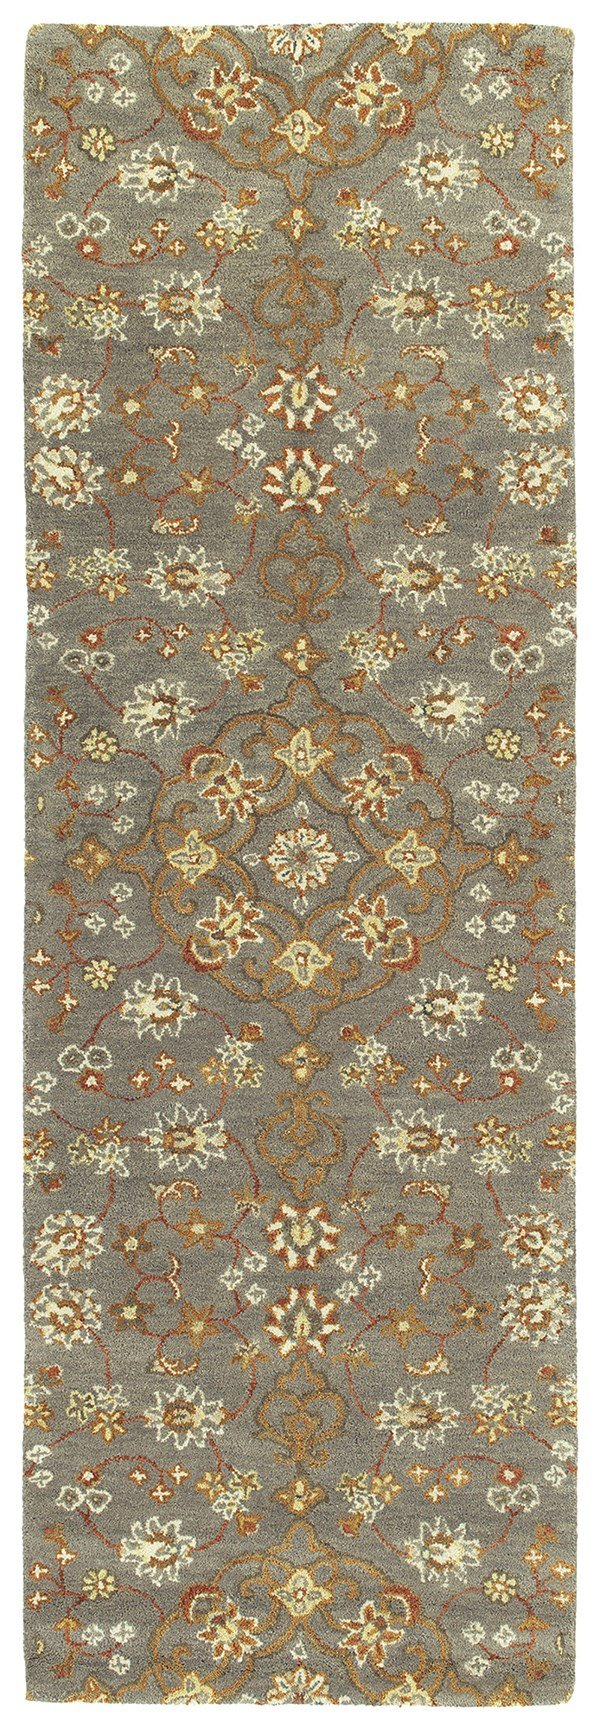 Pewter Green, Linen, Ivory, Copper (102) Traditional / Oriental Area Rug